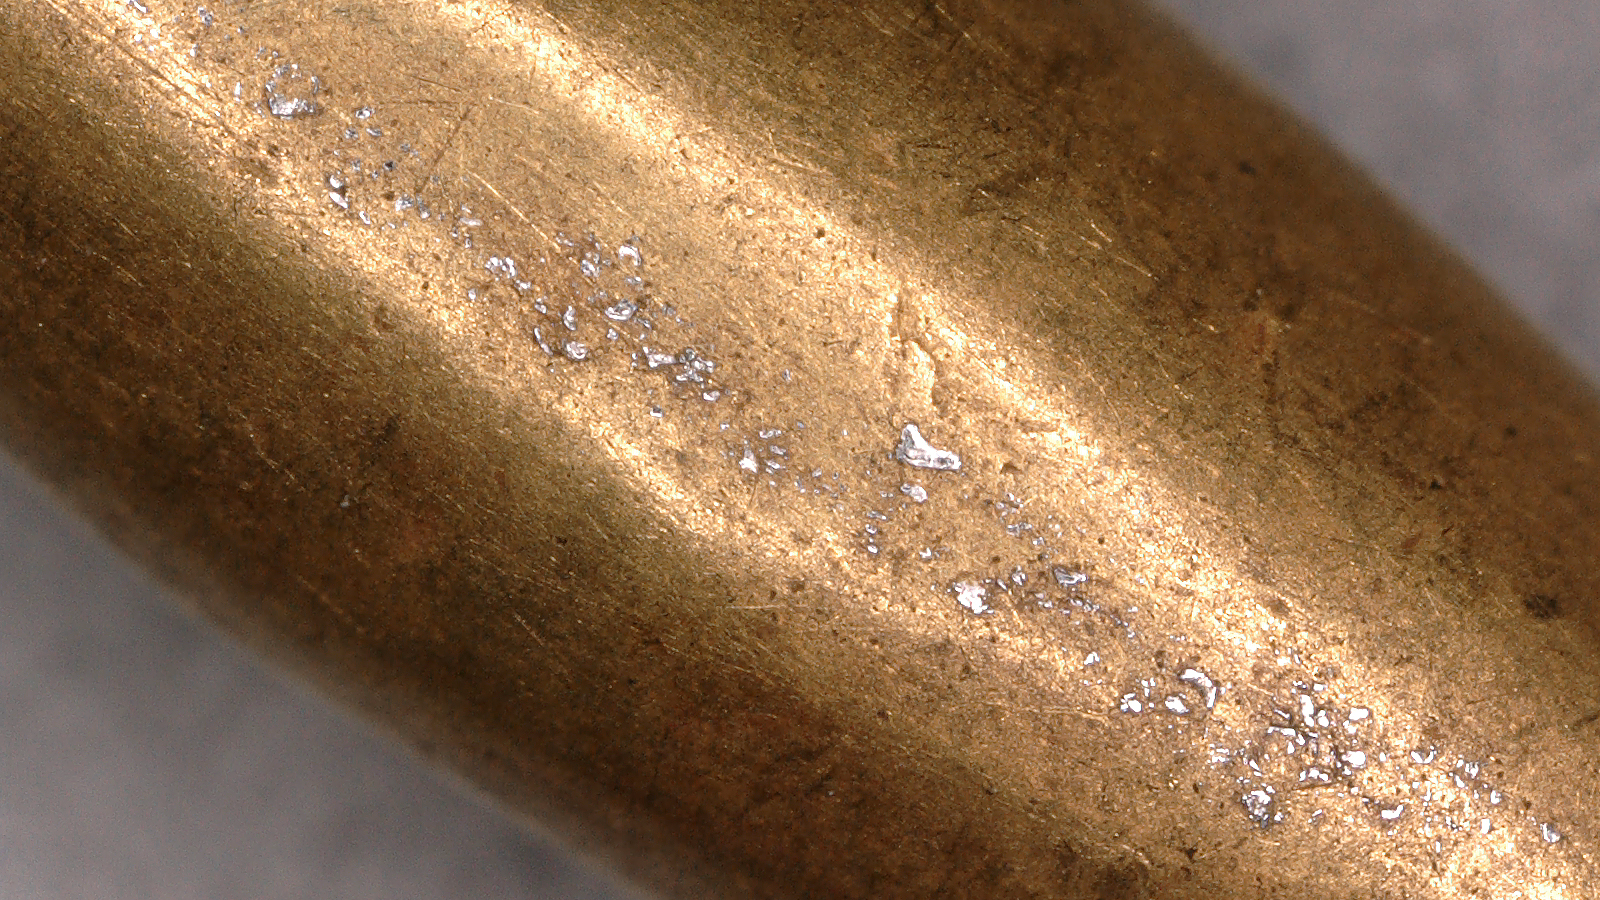 Analysis of light-colored spots on a gold bead from the cloak of Queen Puabi of Ur helps researchers trace the geological origin of the gold.